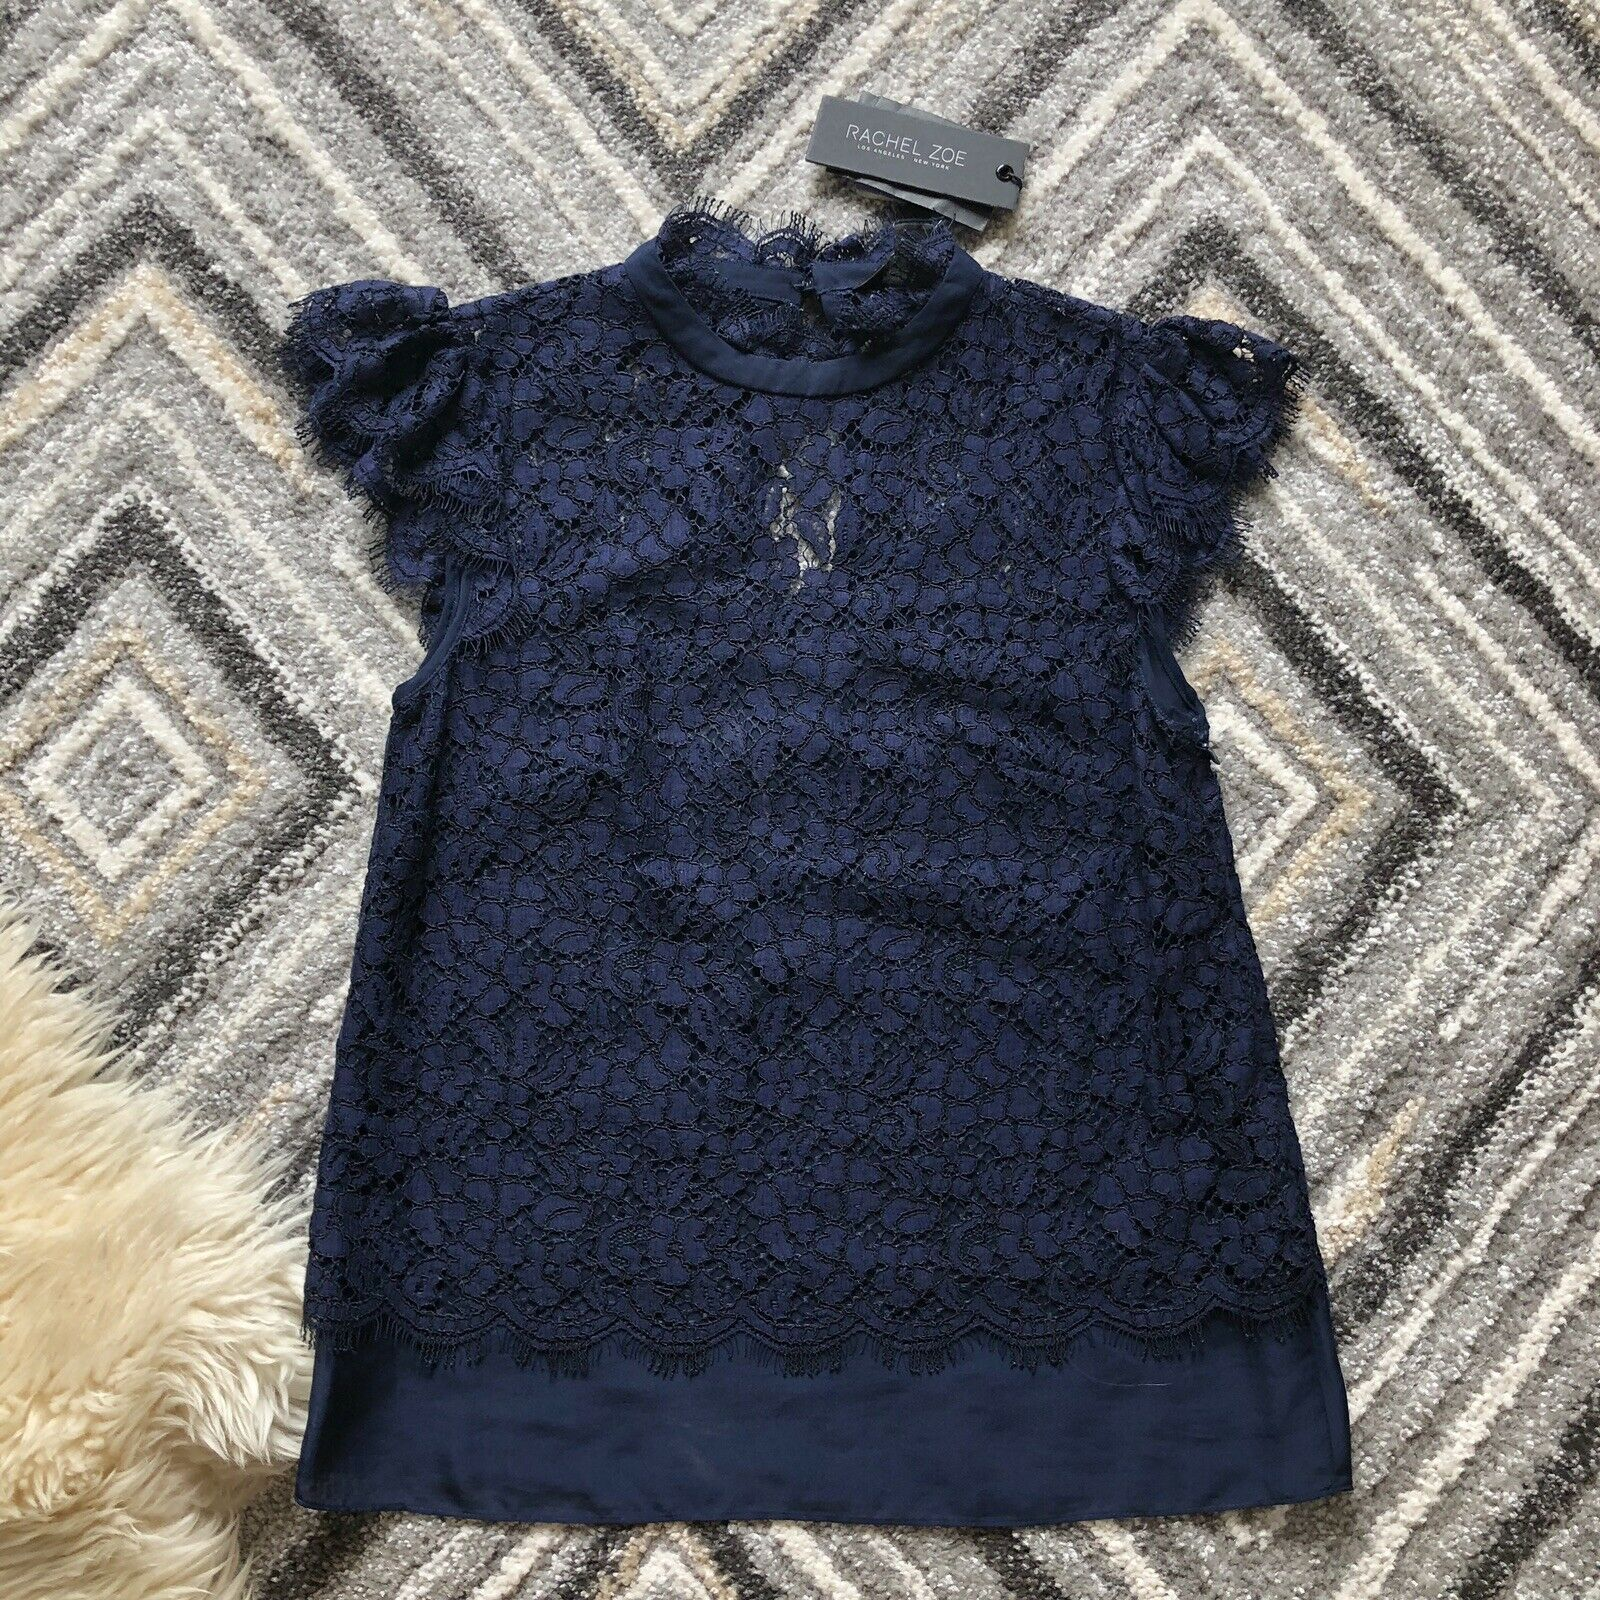 NWT Rachel Zoe Athens Sheer Lace Knit Mock Neck Blouse Navy Blau Sz 2